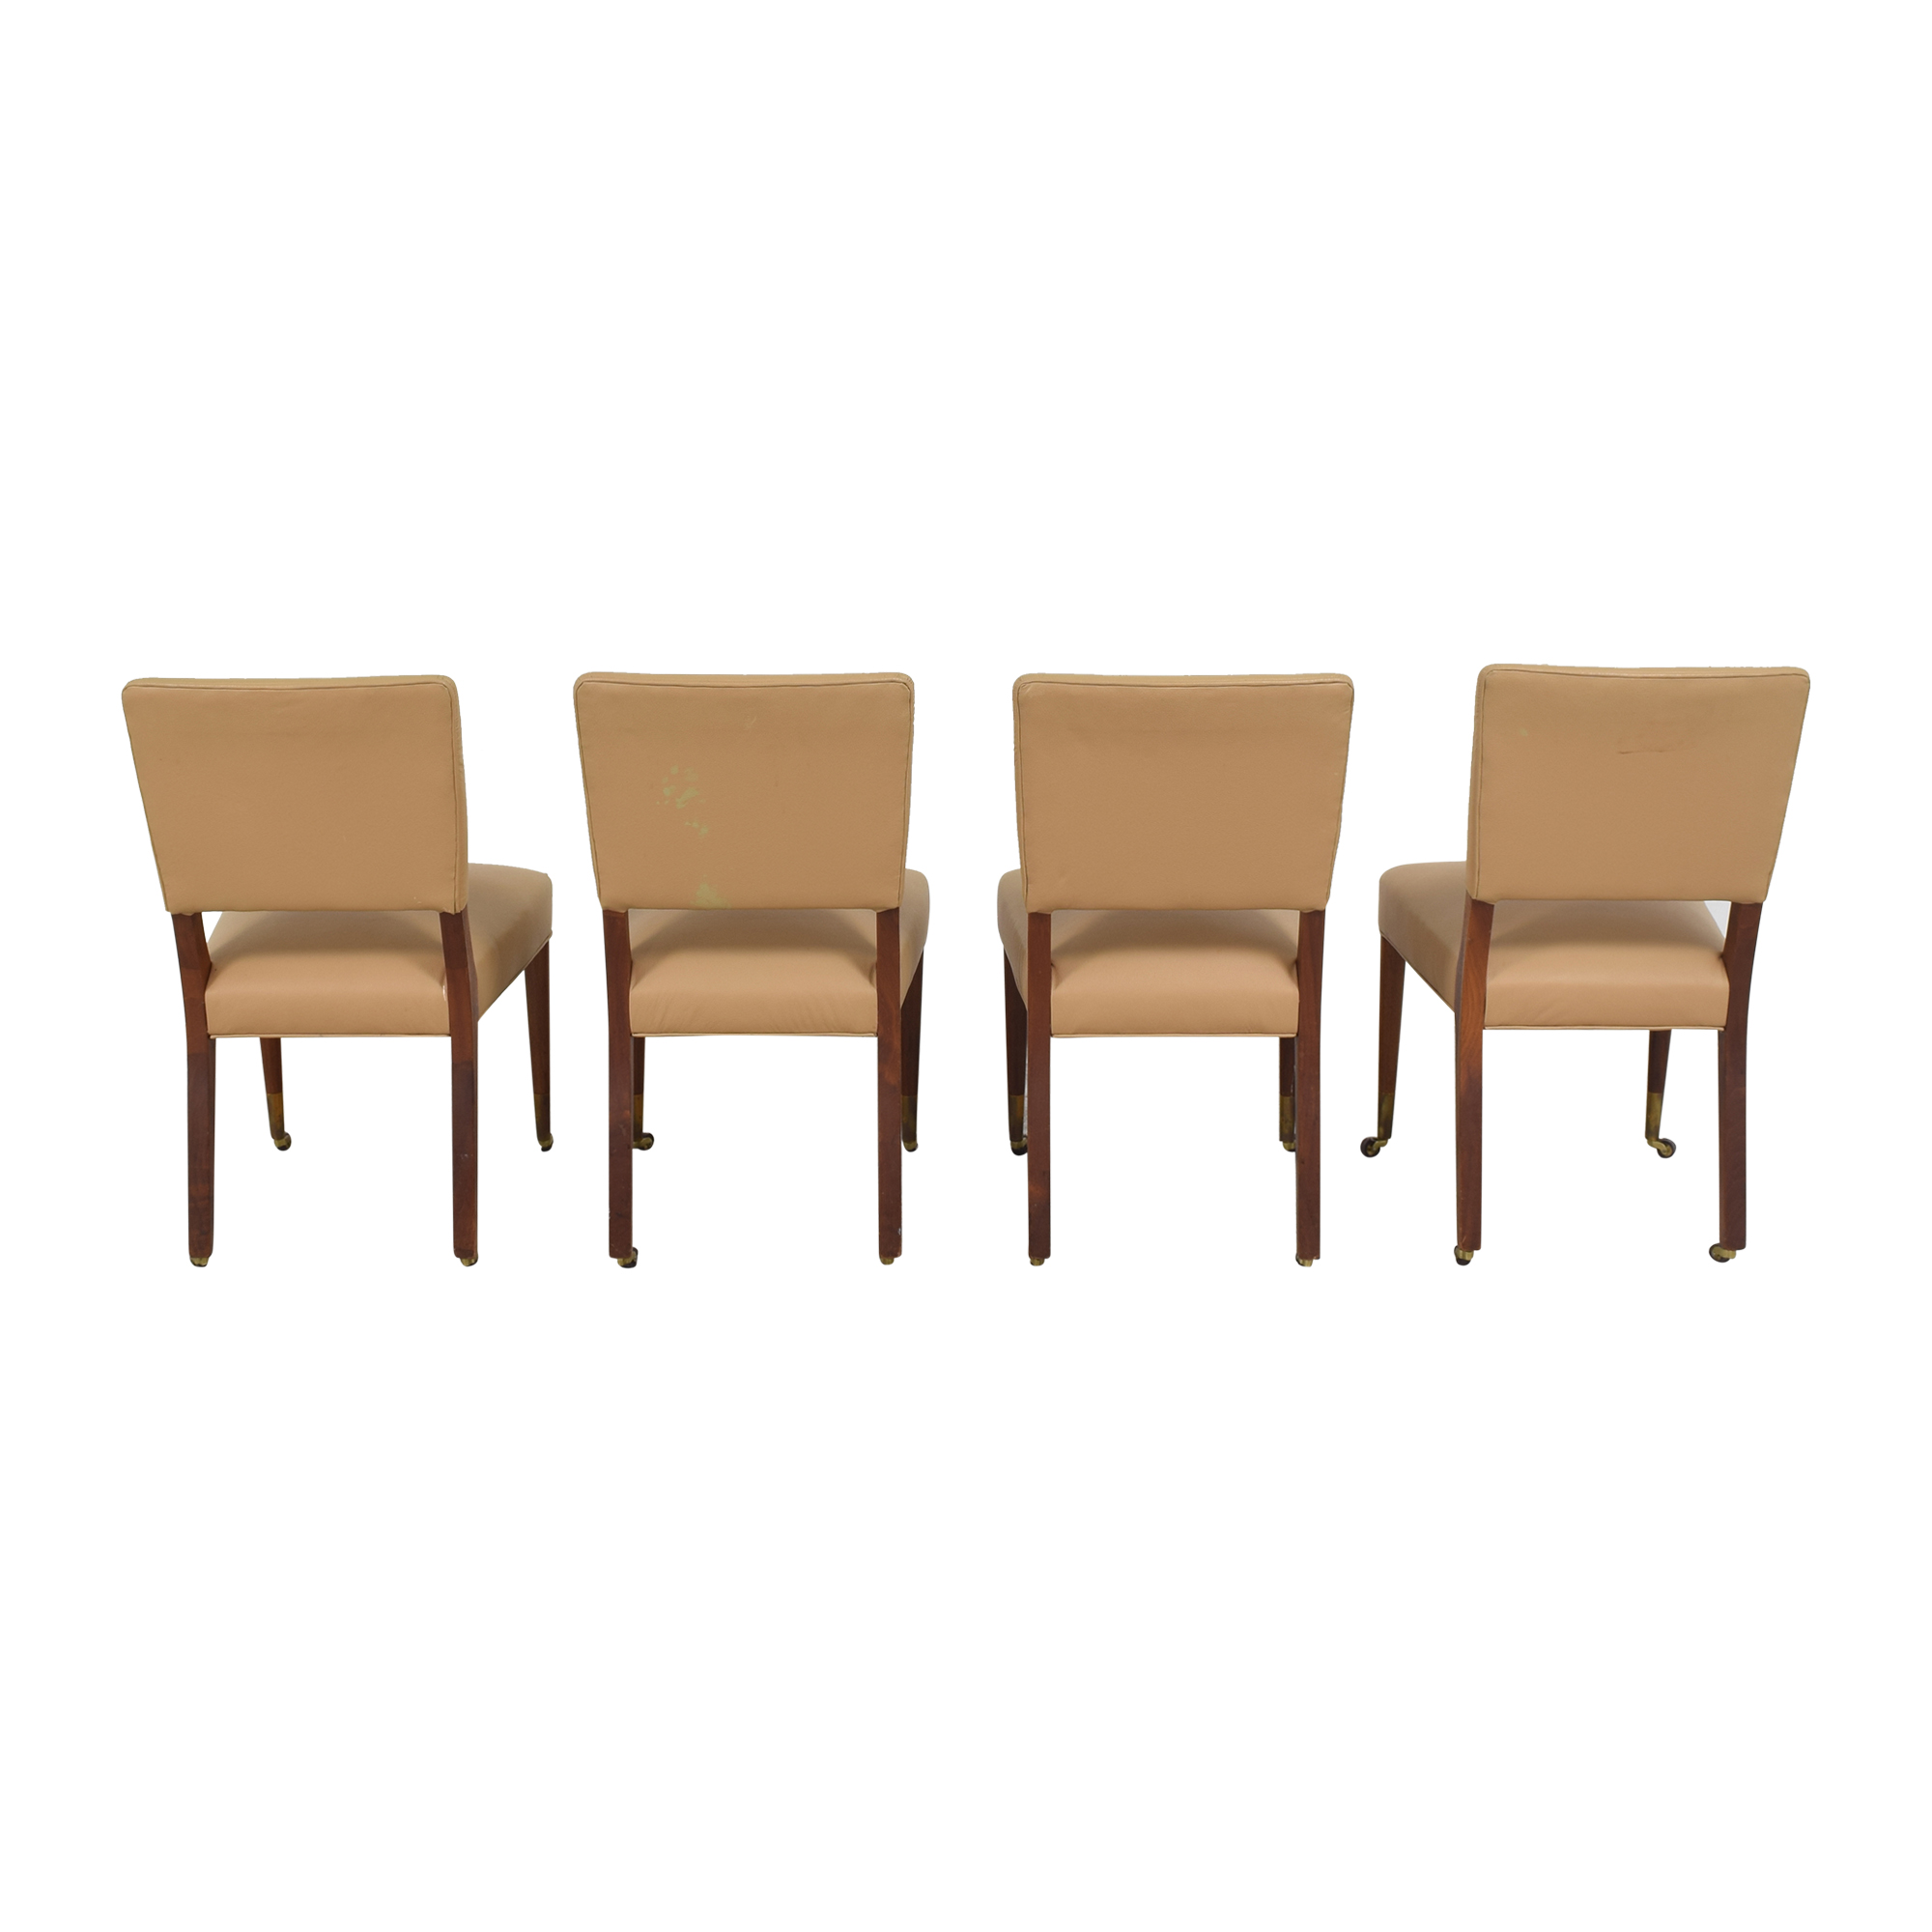 Upholstered Dining Chairs on Casters nyc